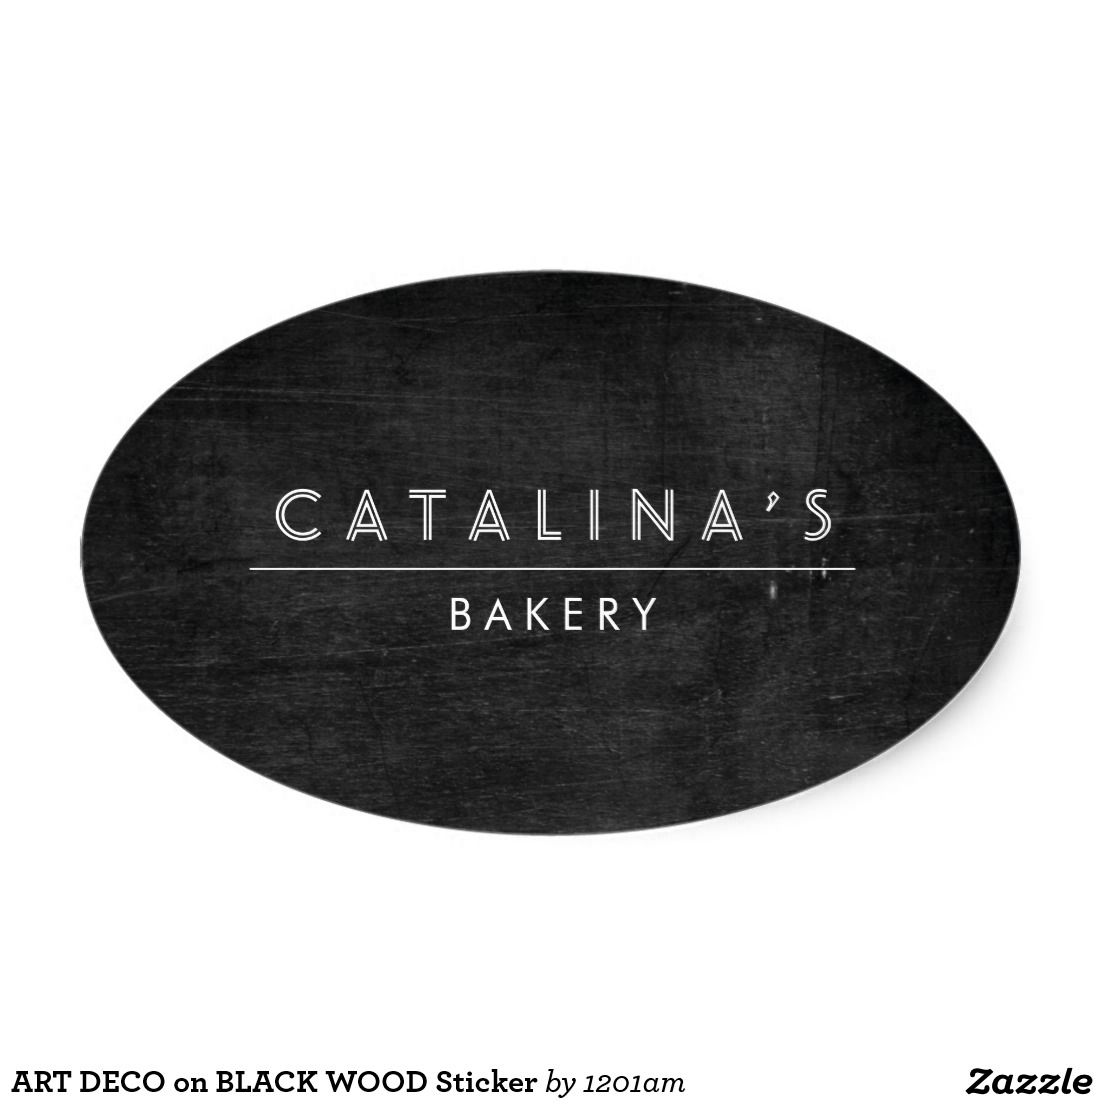 ART DECO on BLACK WOOD Sticker